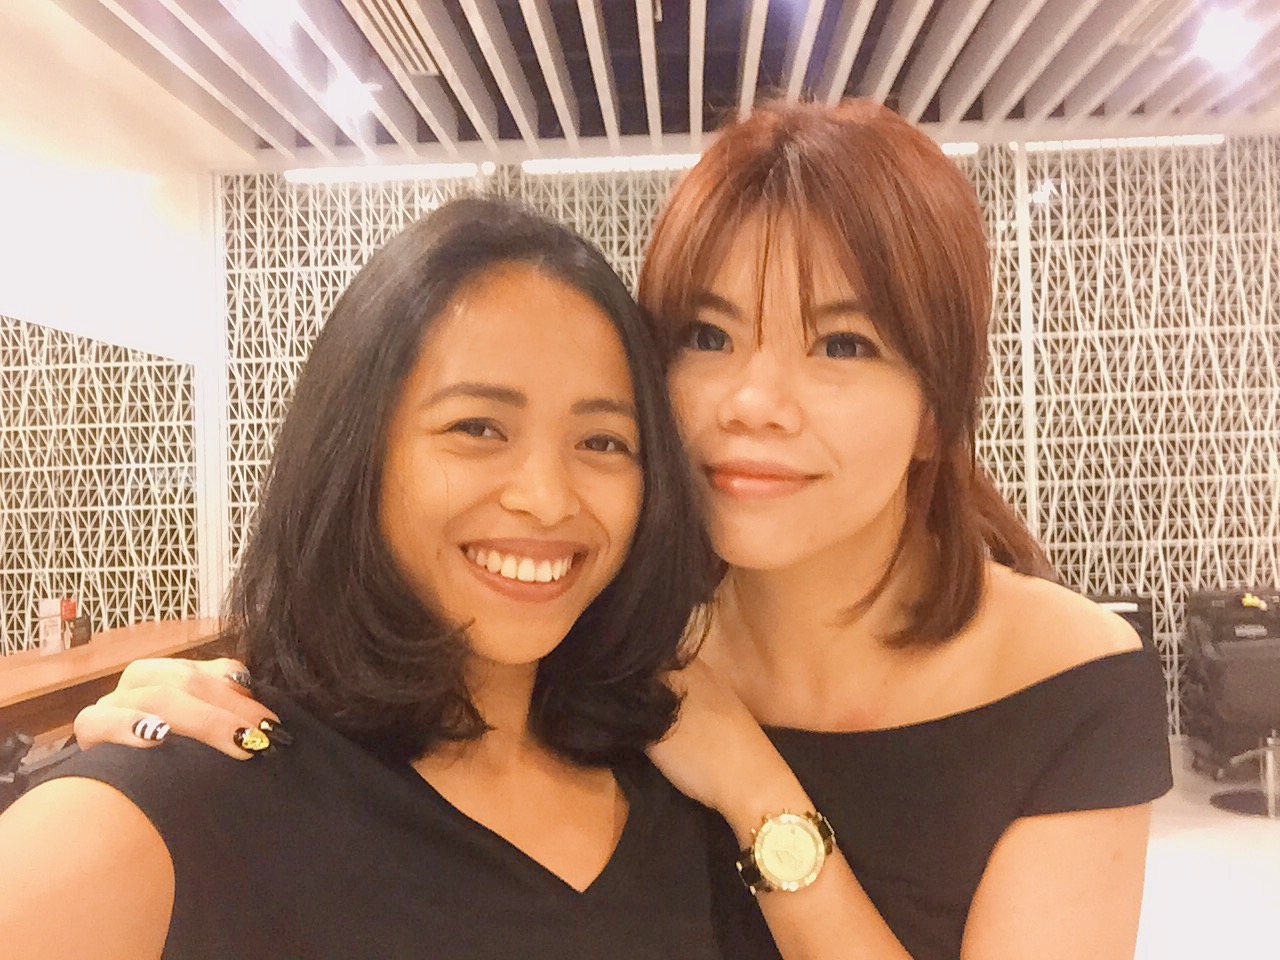 Affordable Haircut at Korean Salon in Singapore by Pro Trim